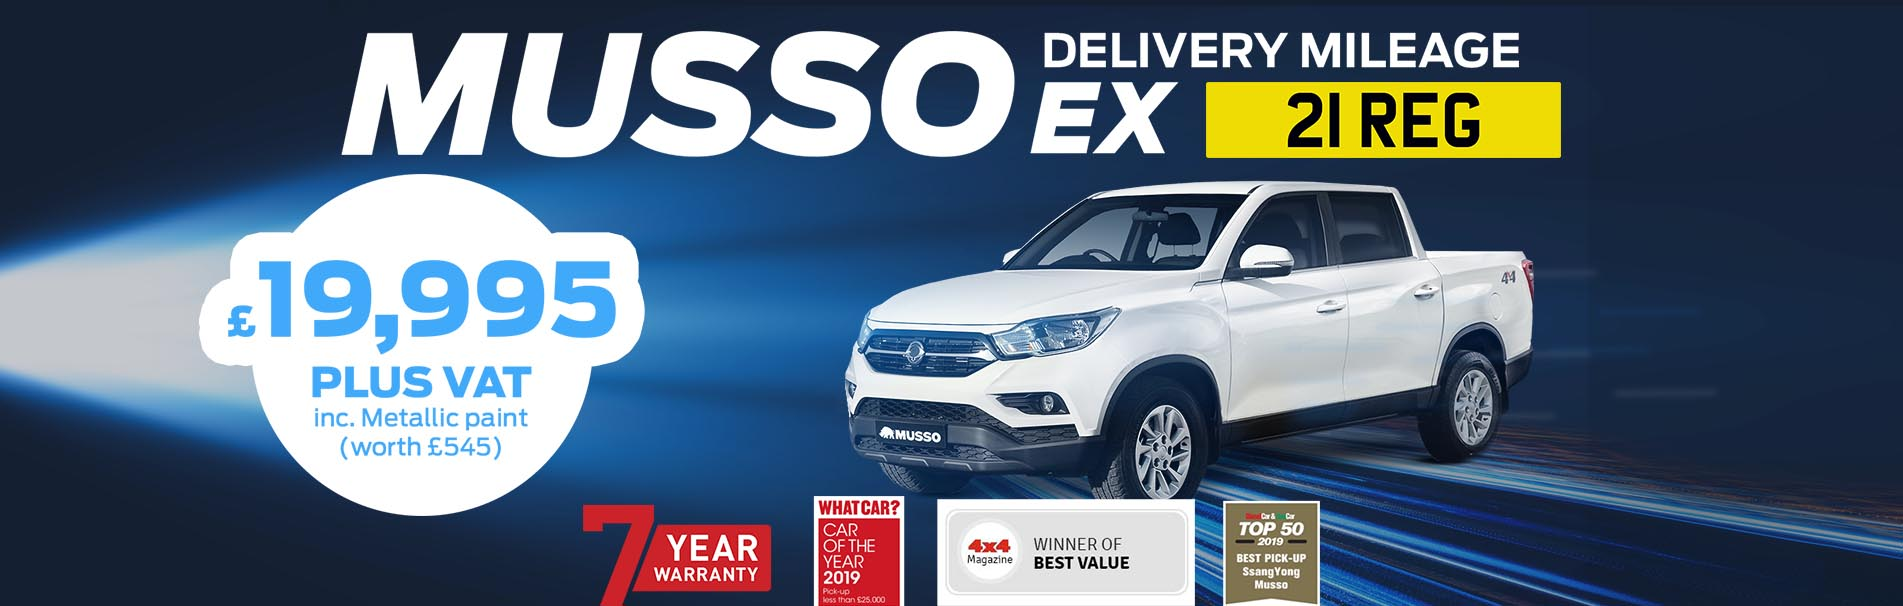 delivery-mileage-21-plate-ssangyong-musso-ex-pickup-sli